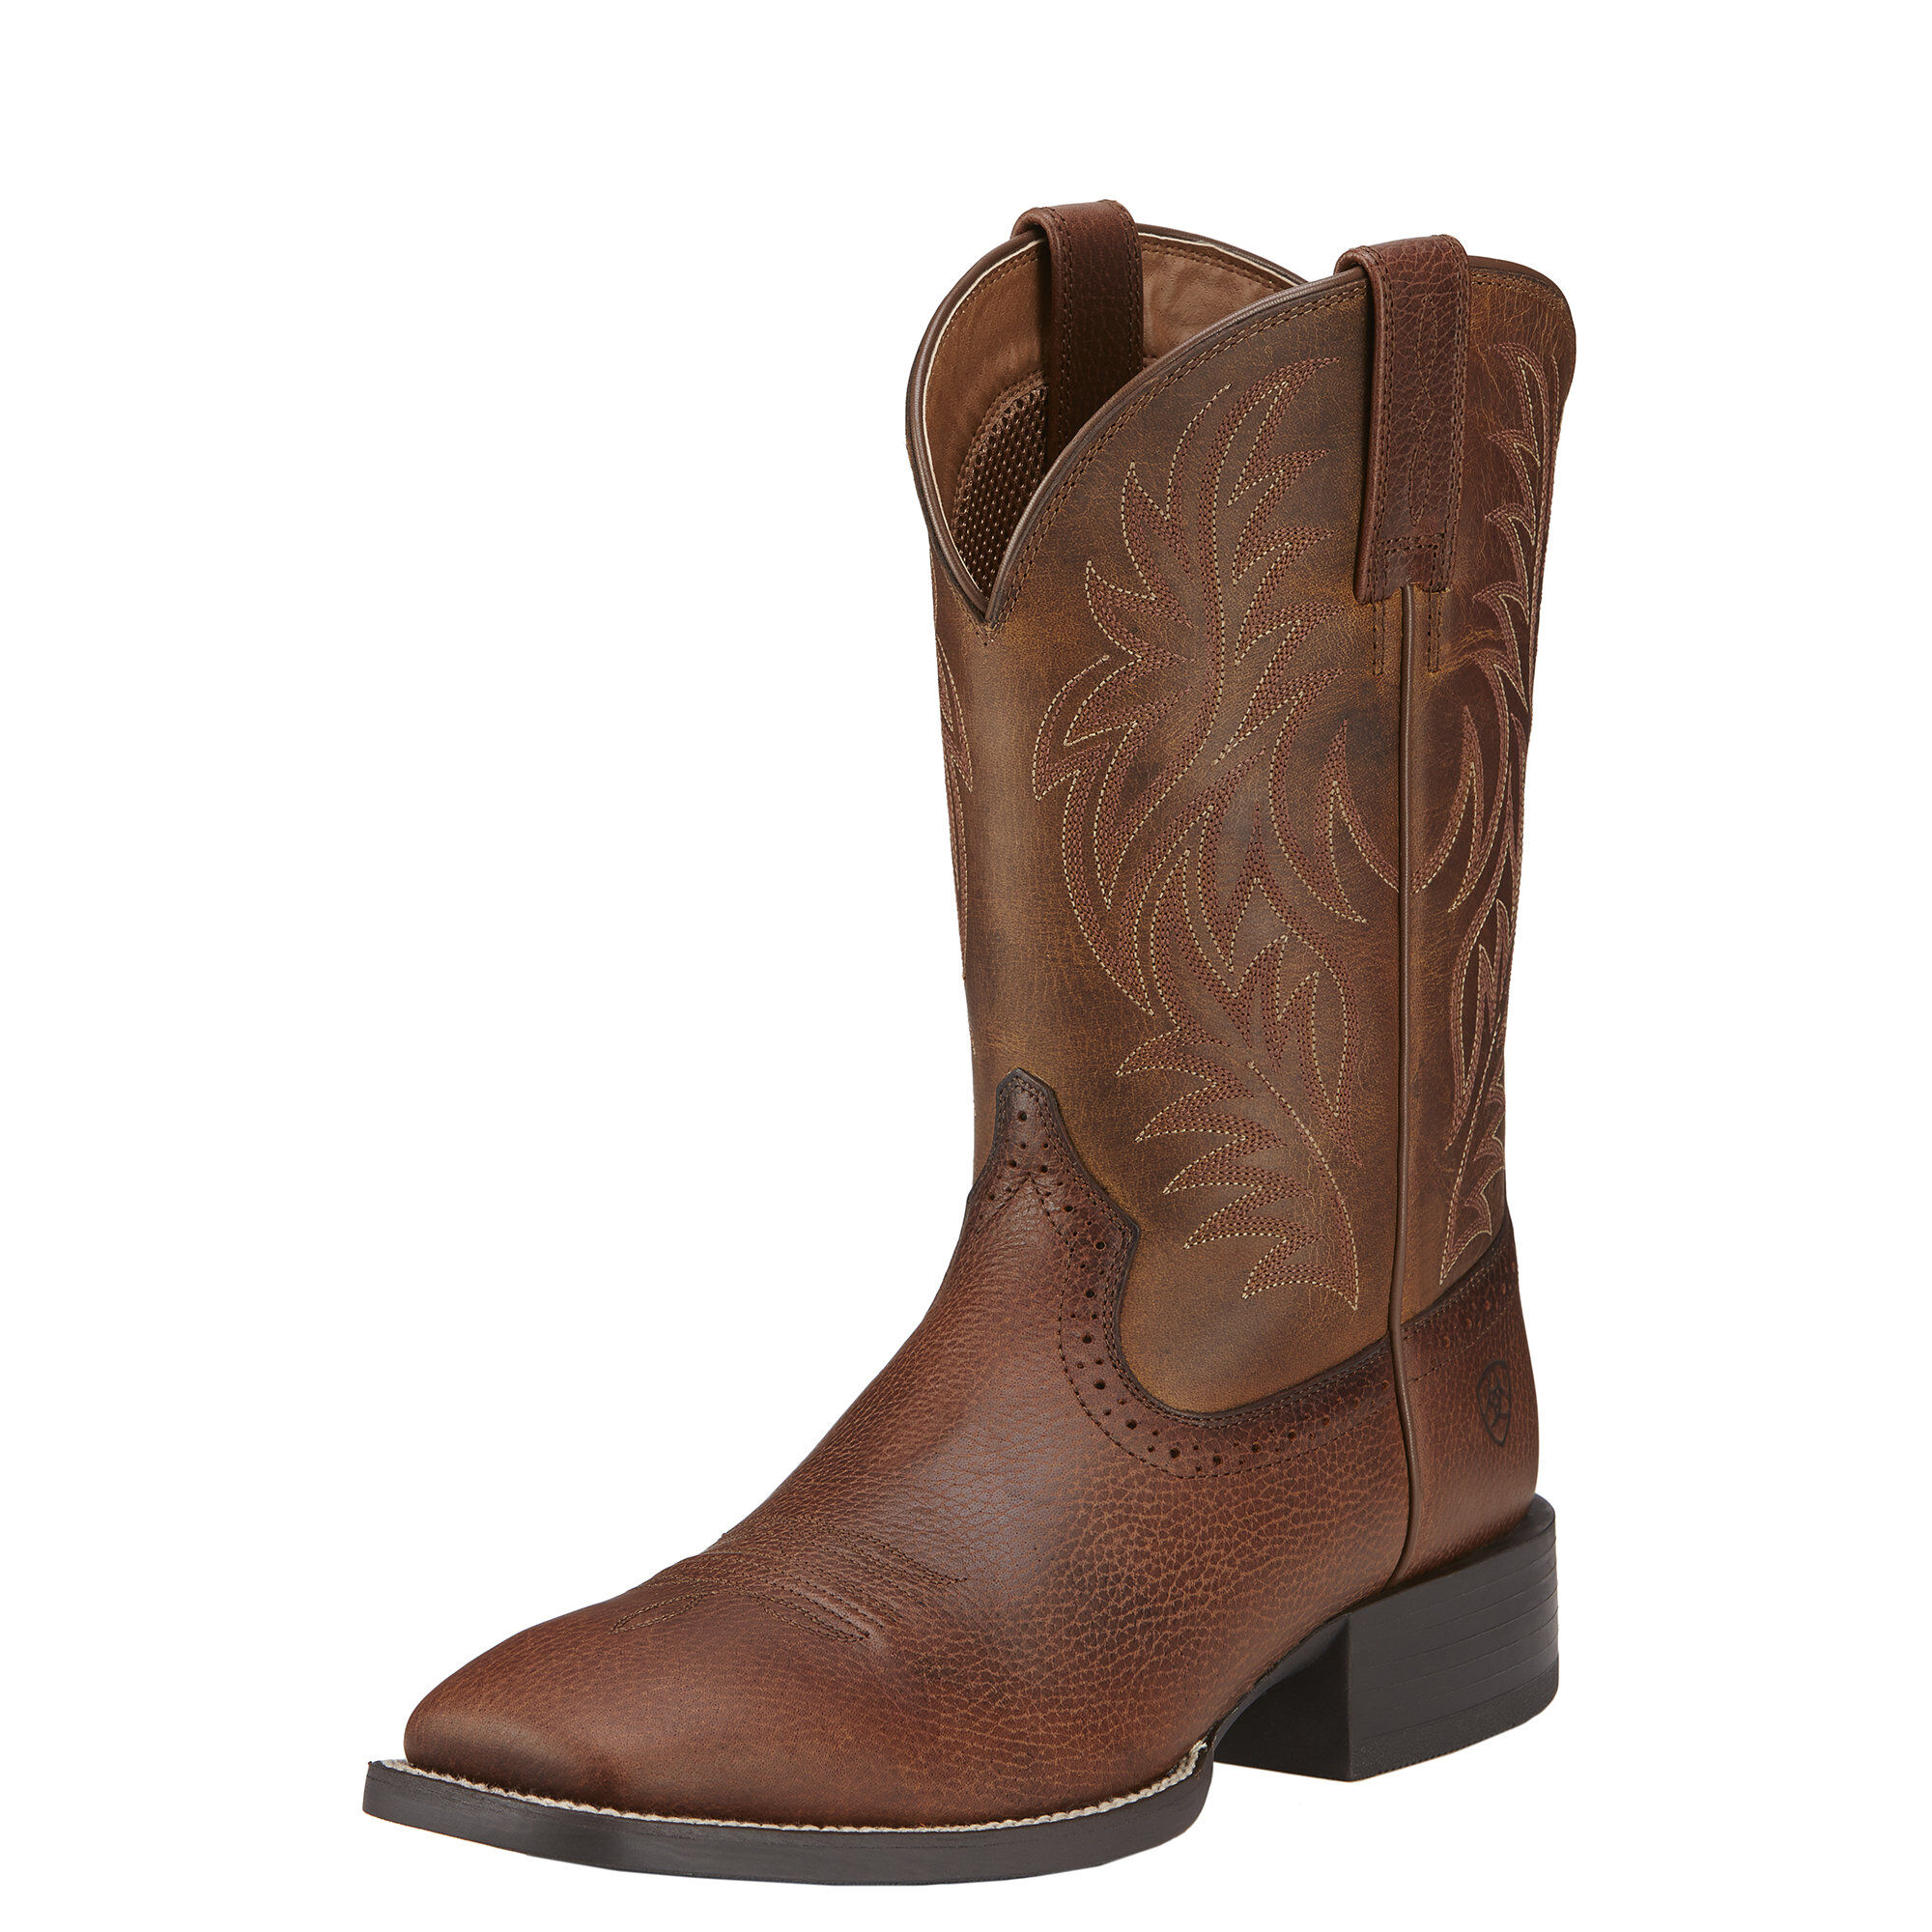 Ariat Sport Rider Wide Square Toe Cowboy Boot(Men's) -Chocolate/Black Full Grain Leather Shop For Online Ni4SwUEI